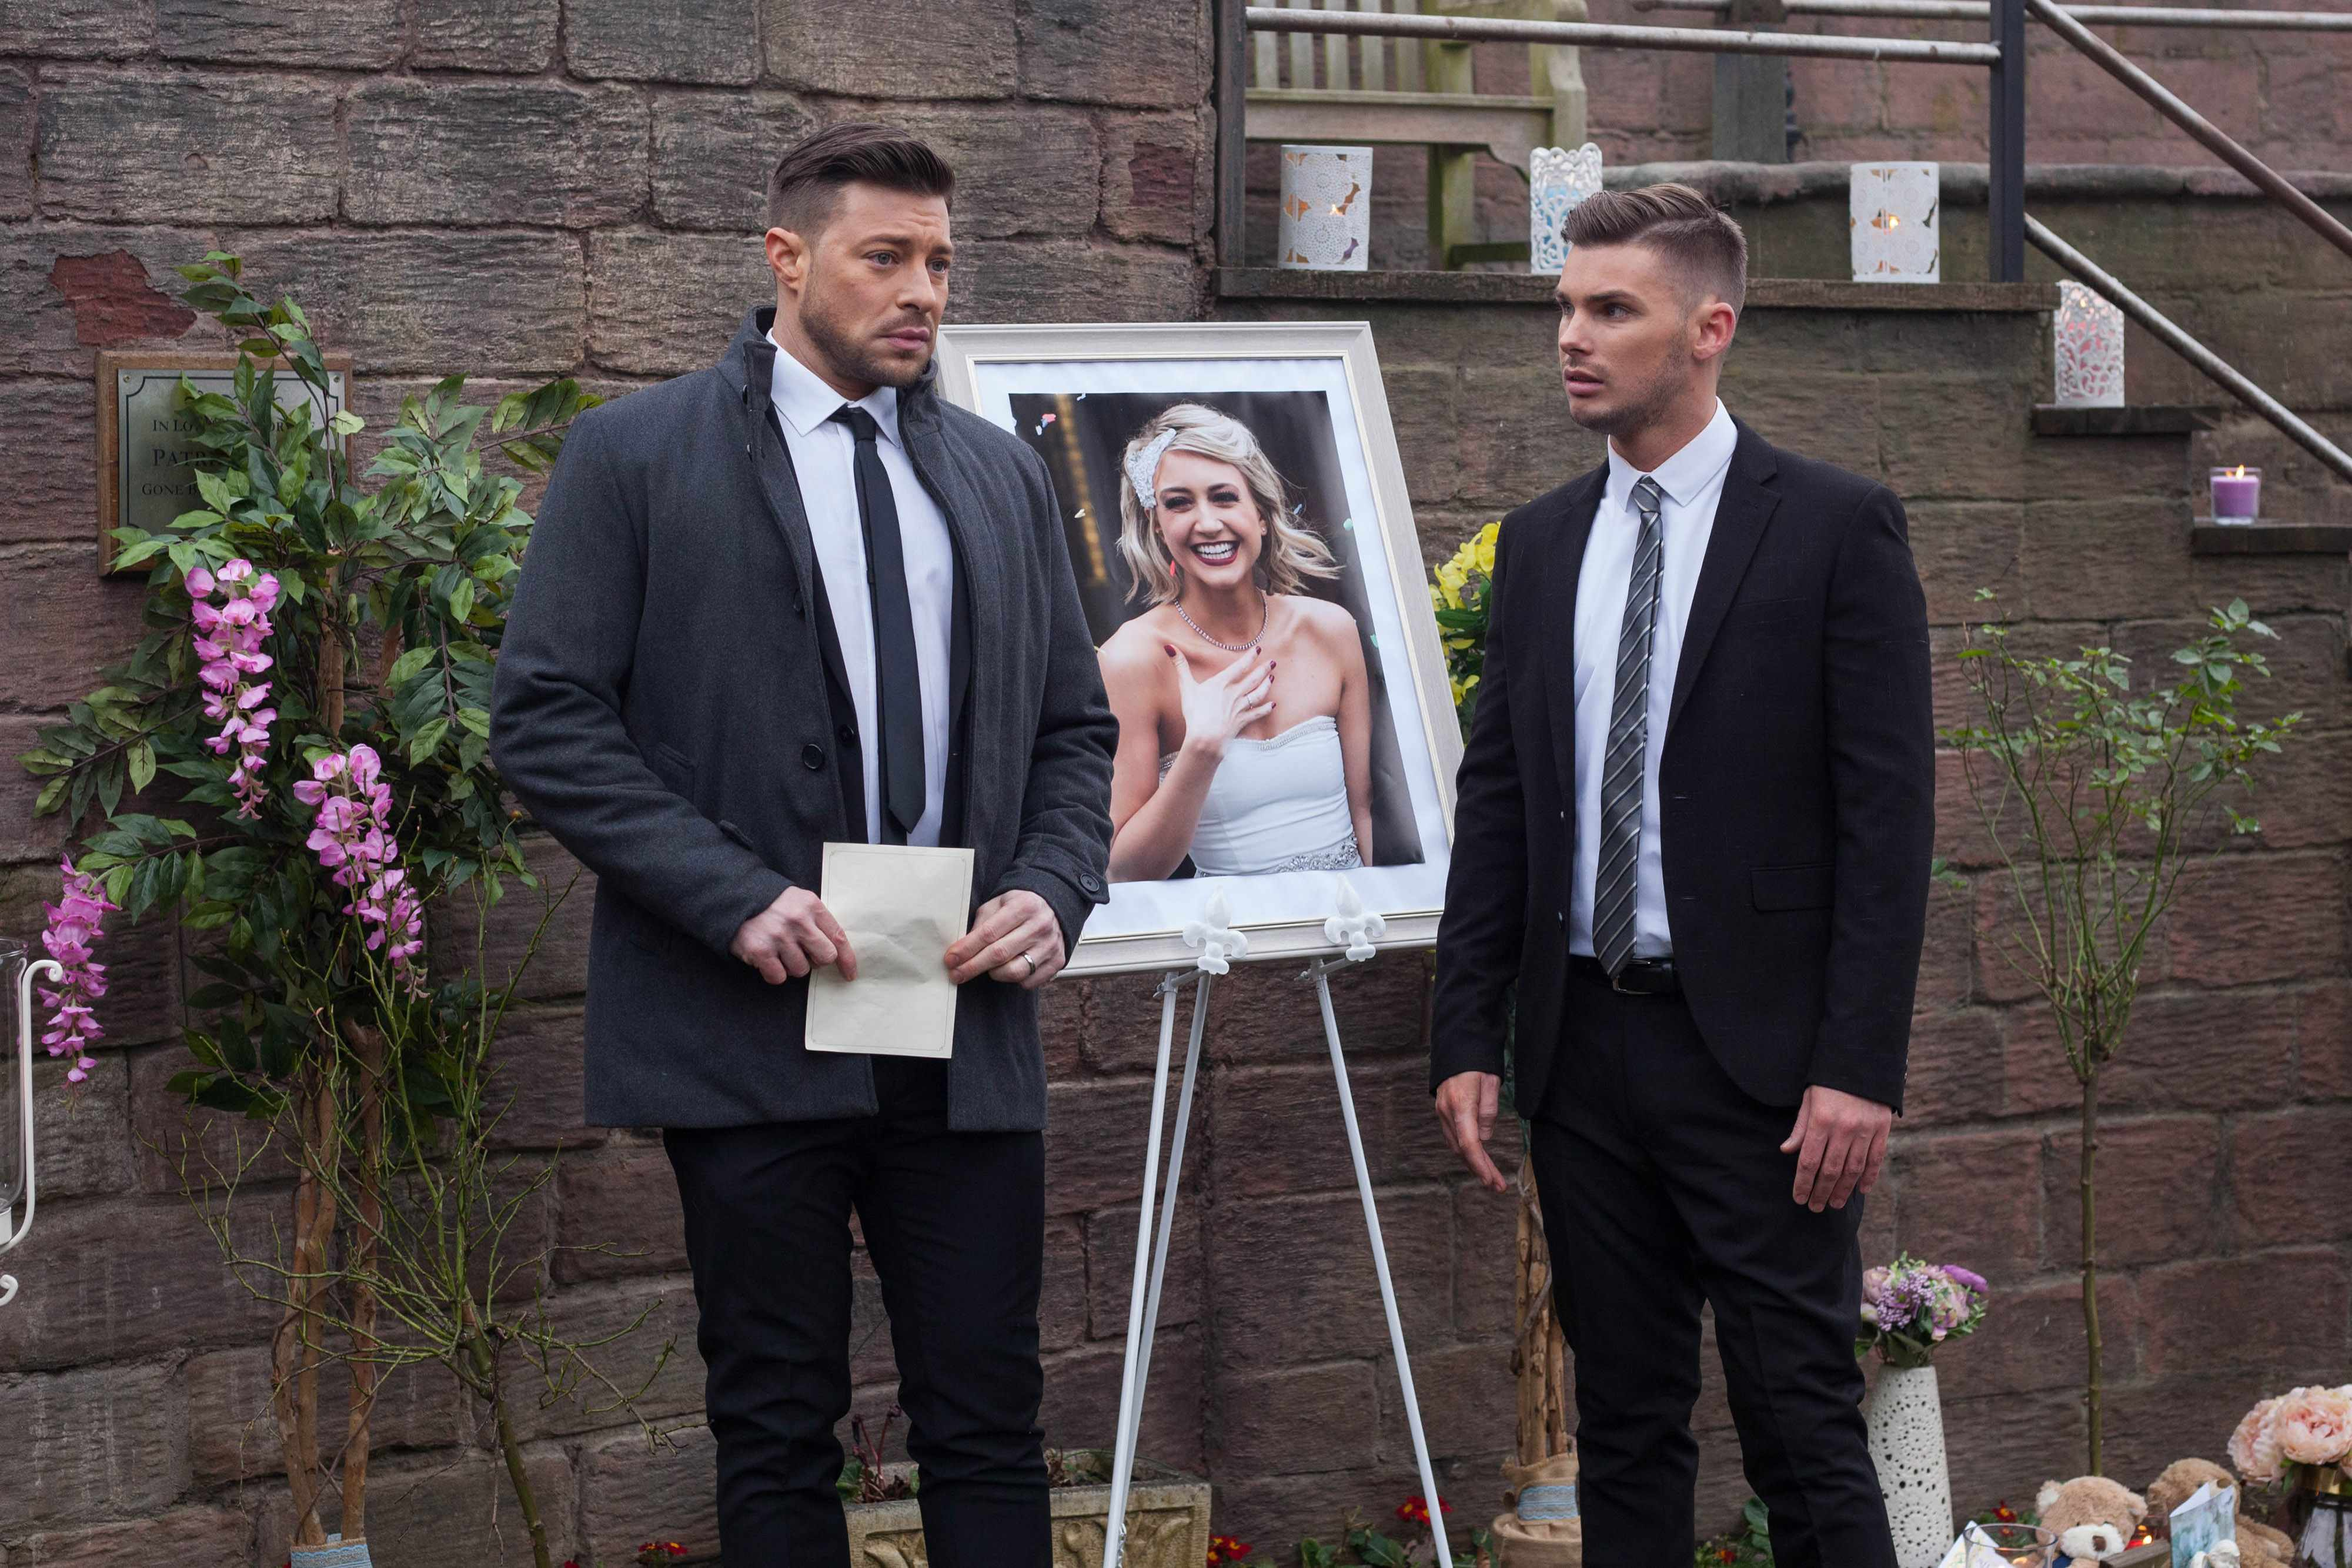 LEELA EXPOSES STE & RYAN AT AMY'S MEMORIAL EMBARGOED UNTIL 20TH MARCH